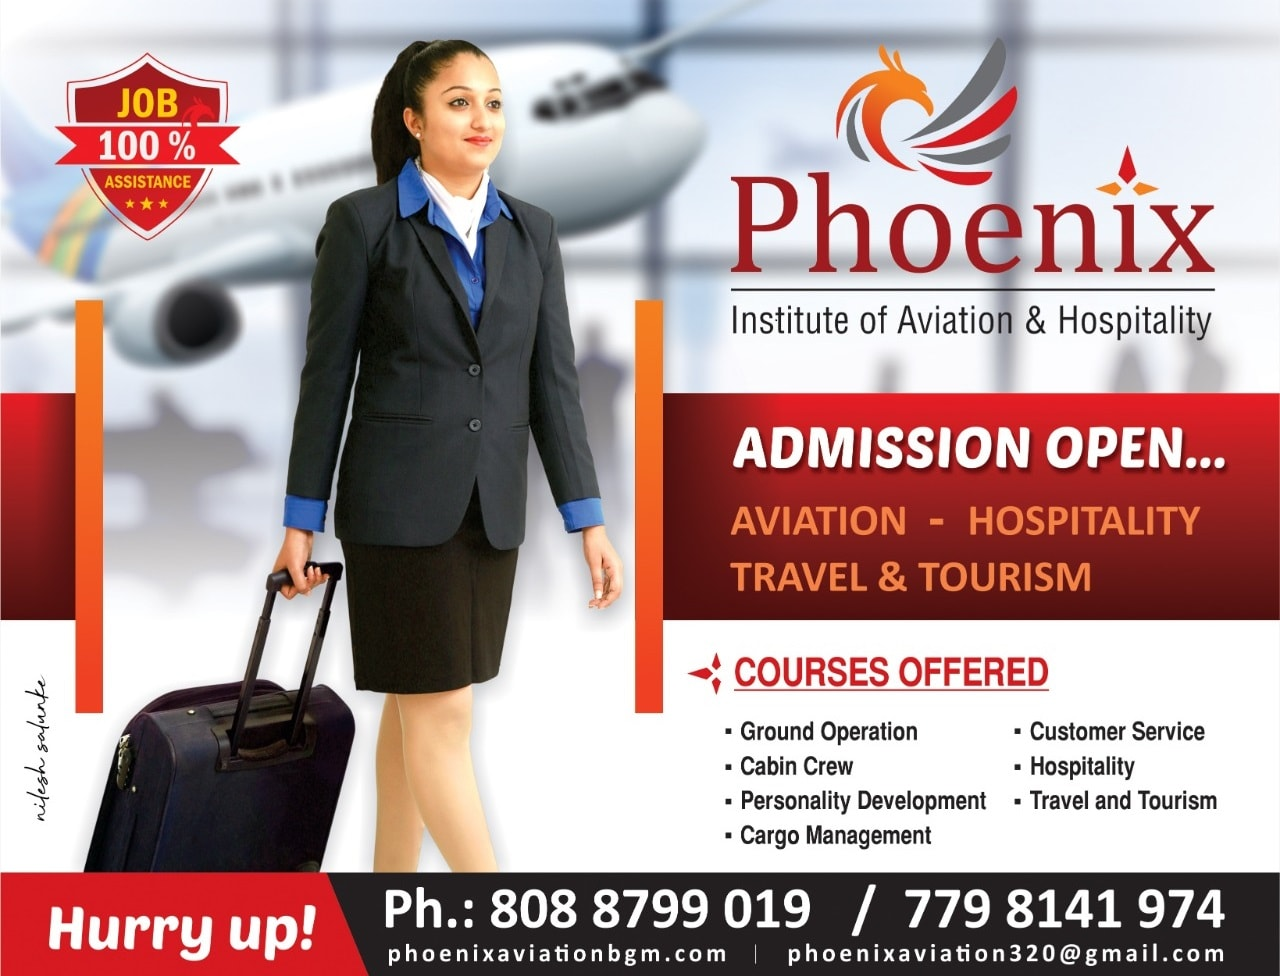 adv_37_Phoenix-Institute-of-Aviation-and-Hospitality-Belgaum-belgavkar-news-advertisement-3.jpg